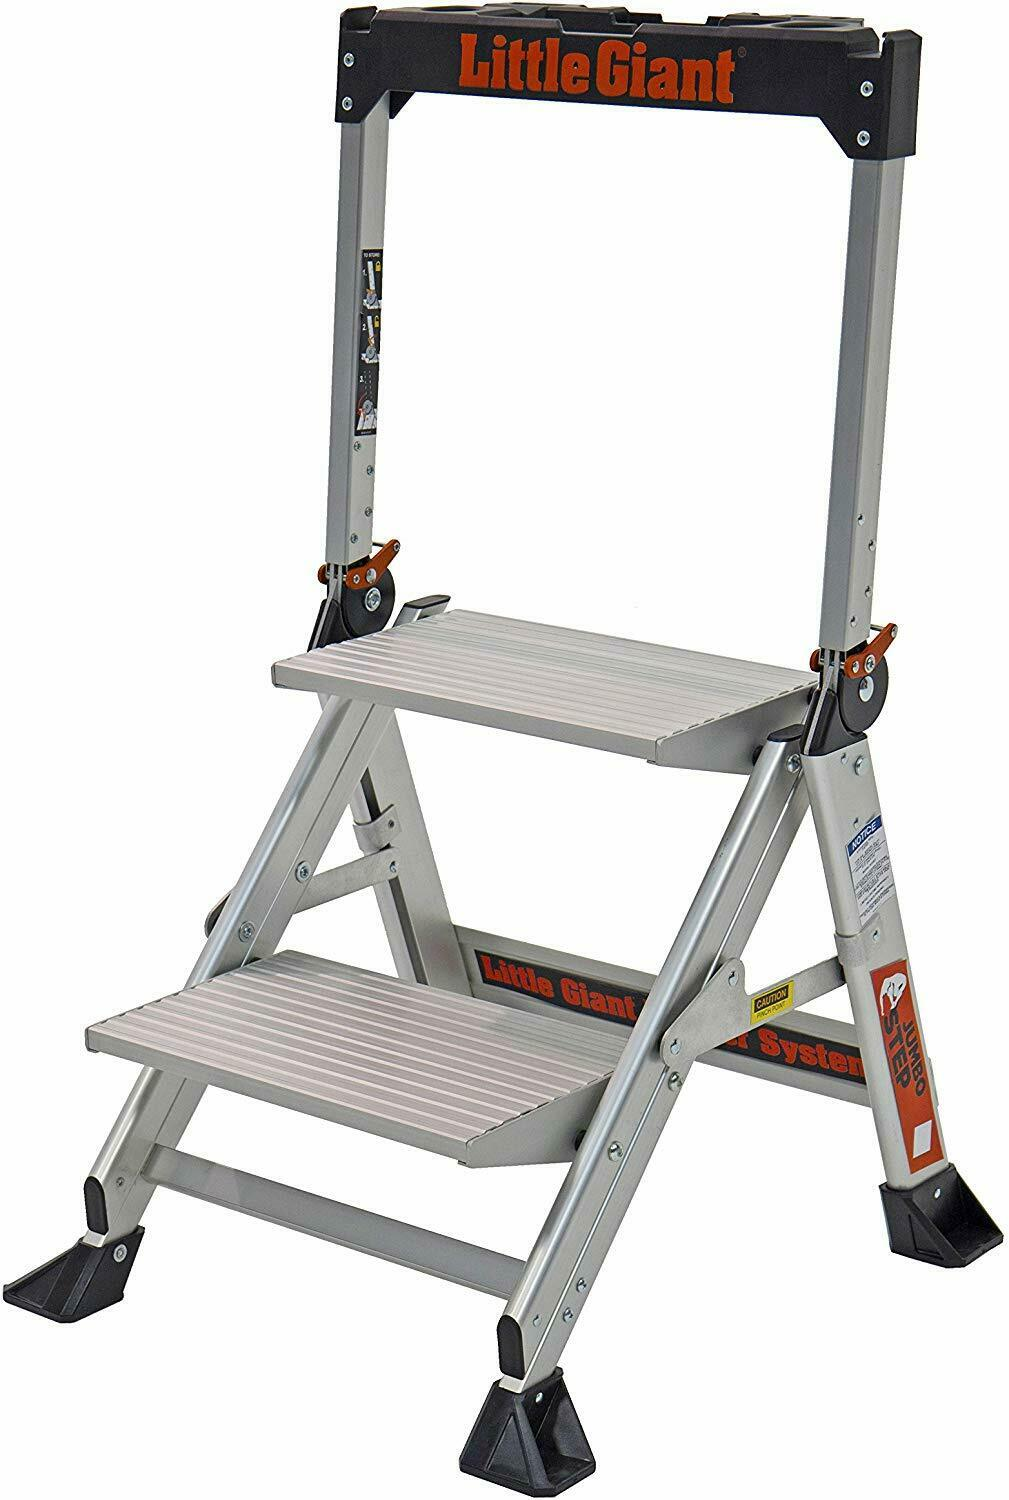 Little Giant Ladder Systems 11902 2-Step Jumbo New Sealed in